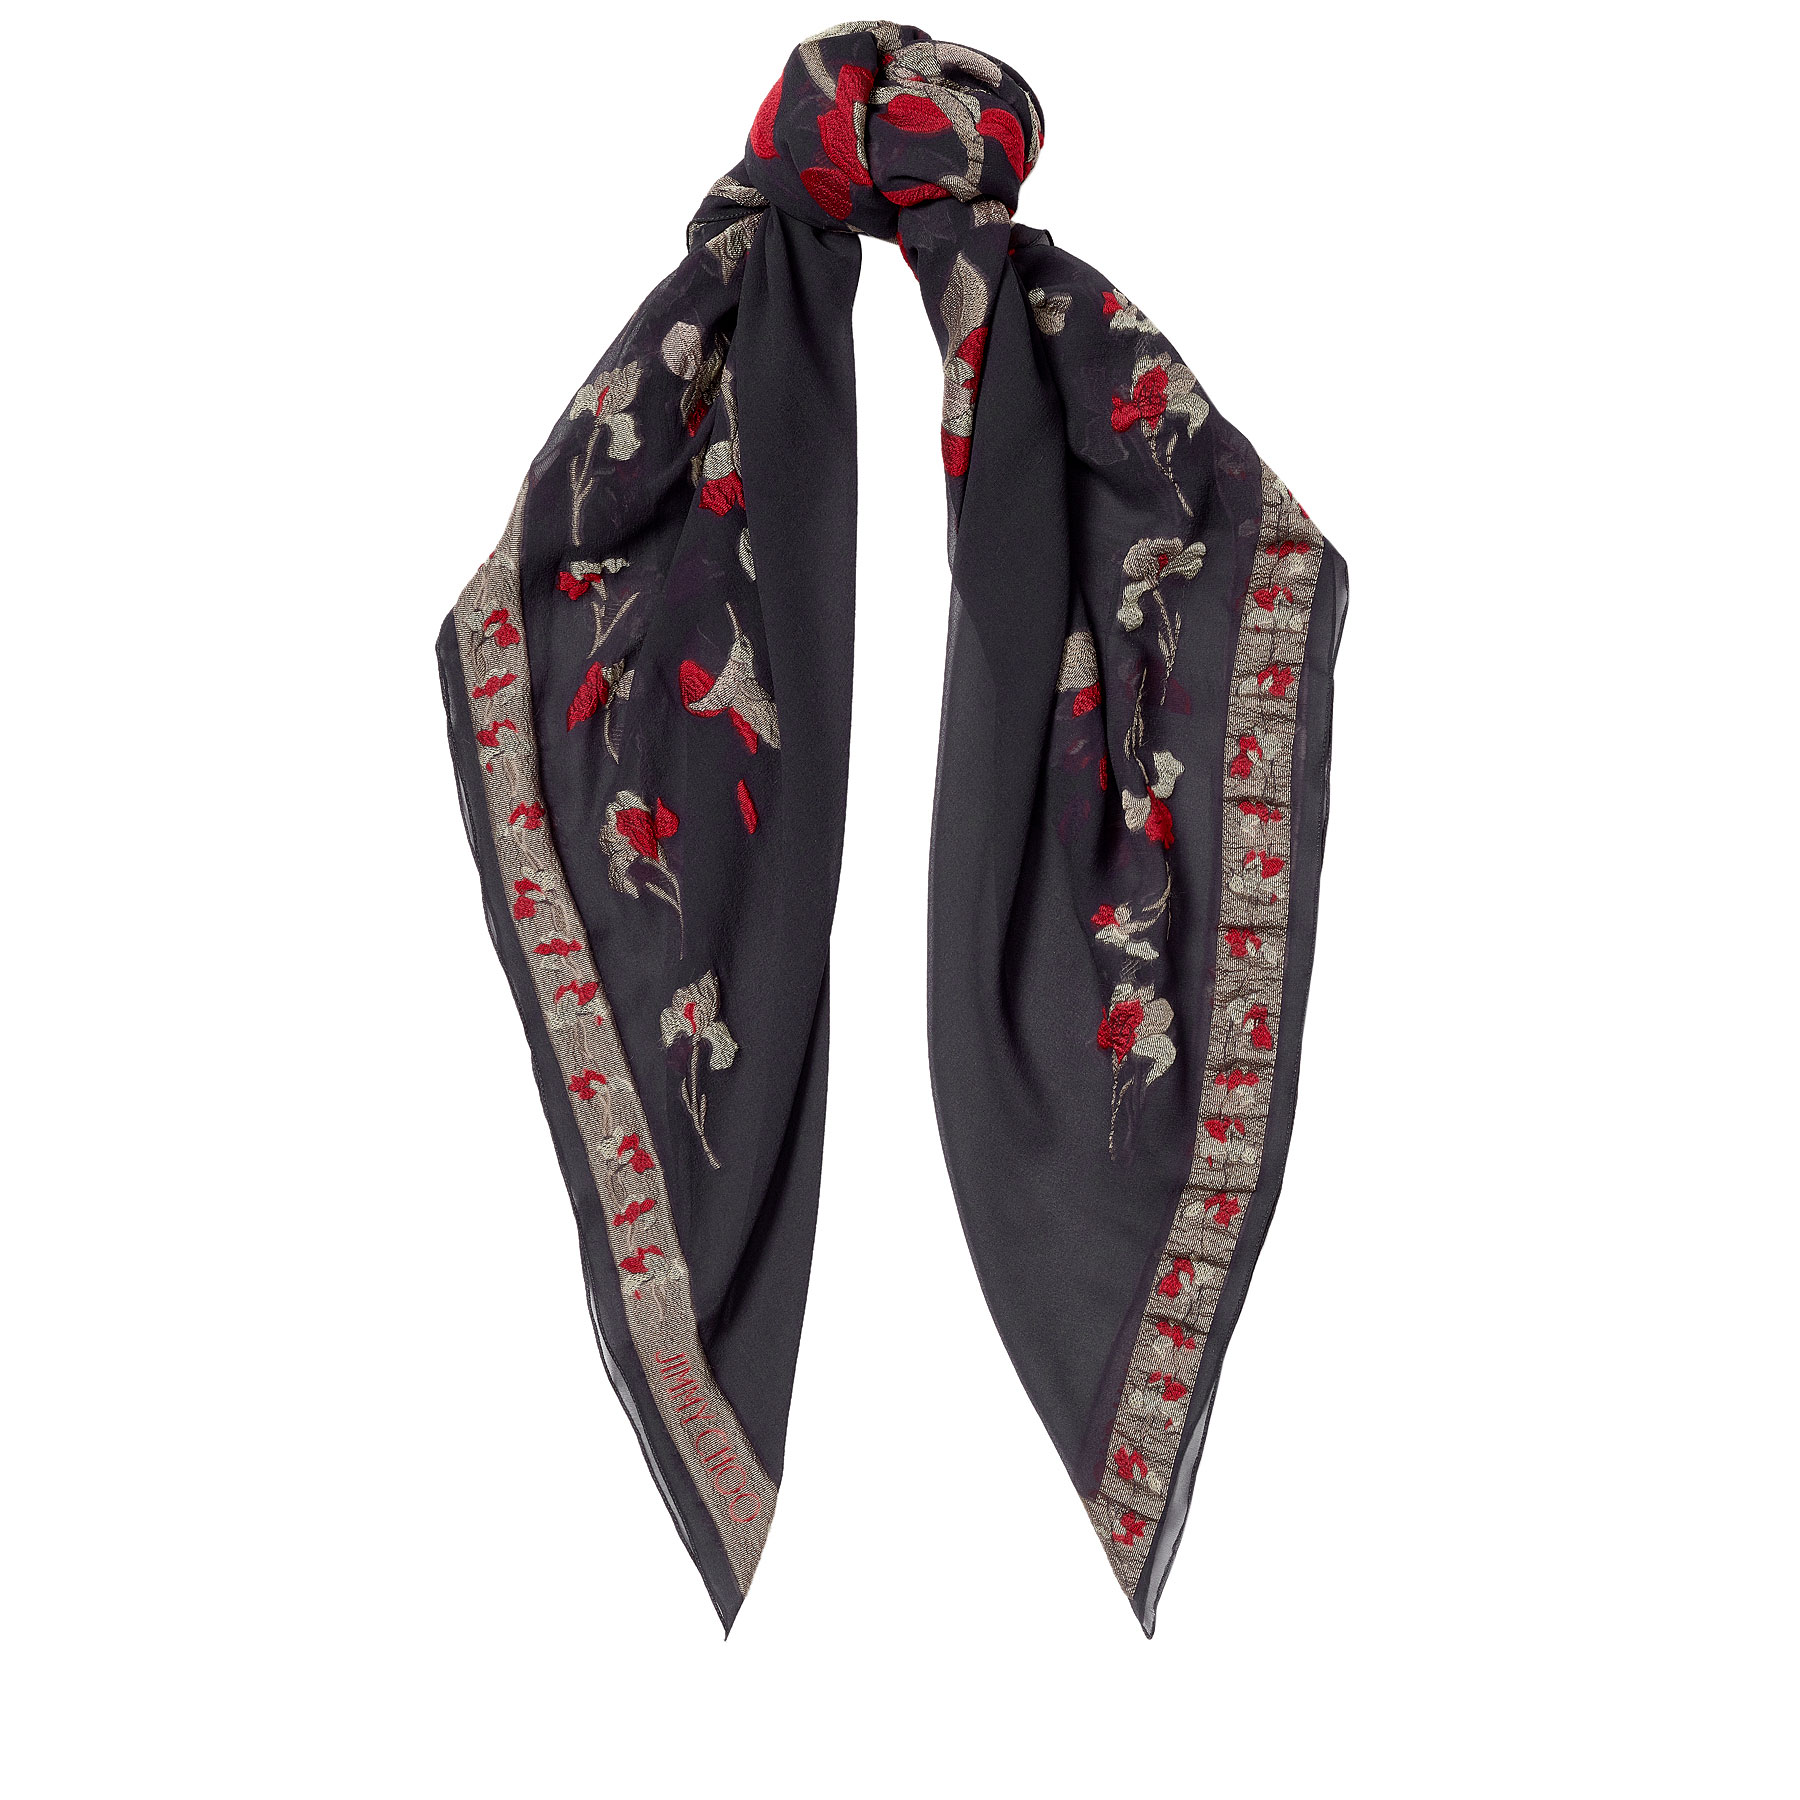 MOLY Anthracite and Nude Printed Pashmina Shawl